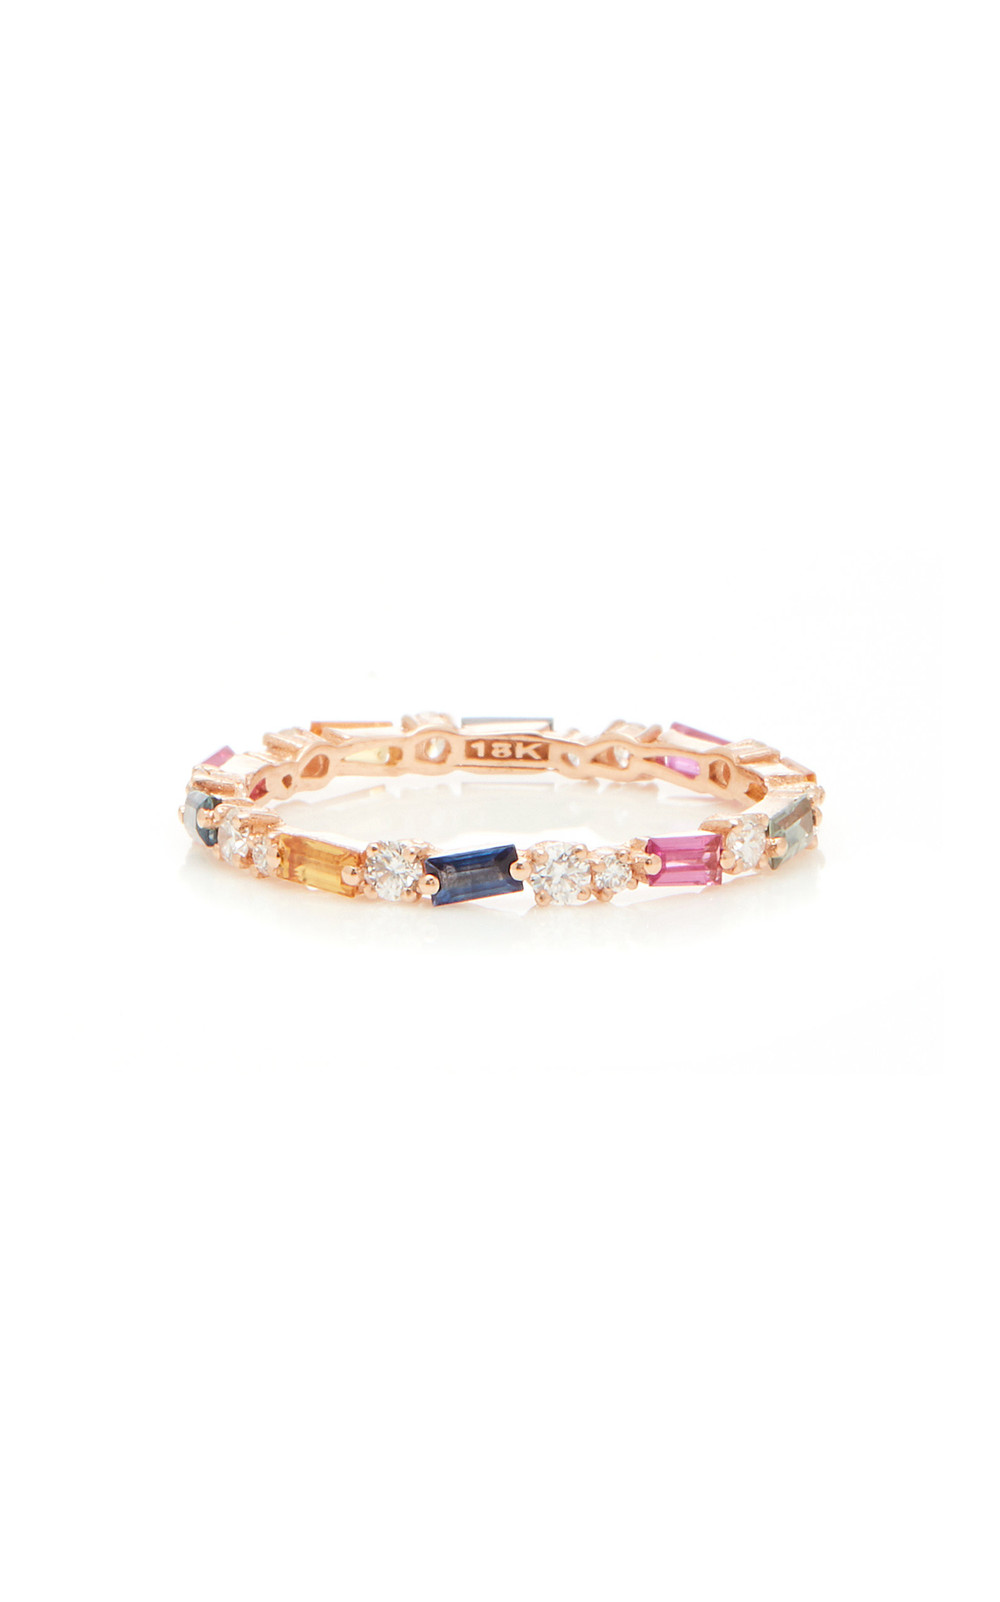 Suzanne Kalan 18K Rose Gold Sapphire and Diamond Ring in multi